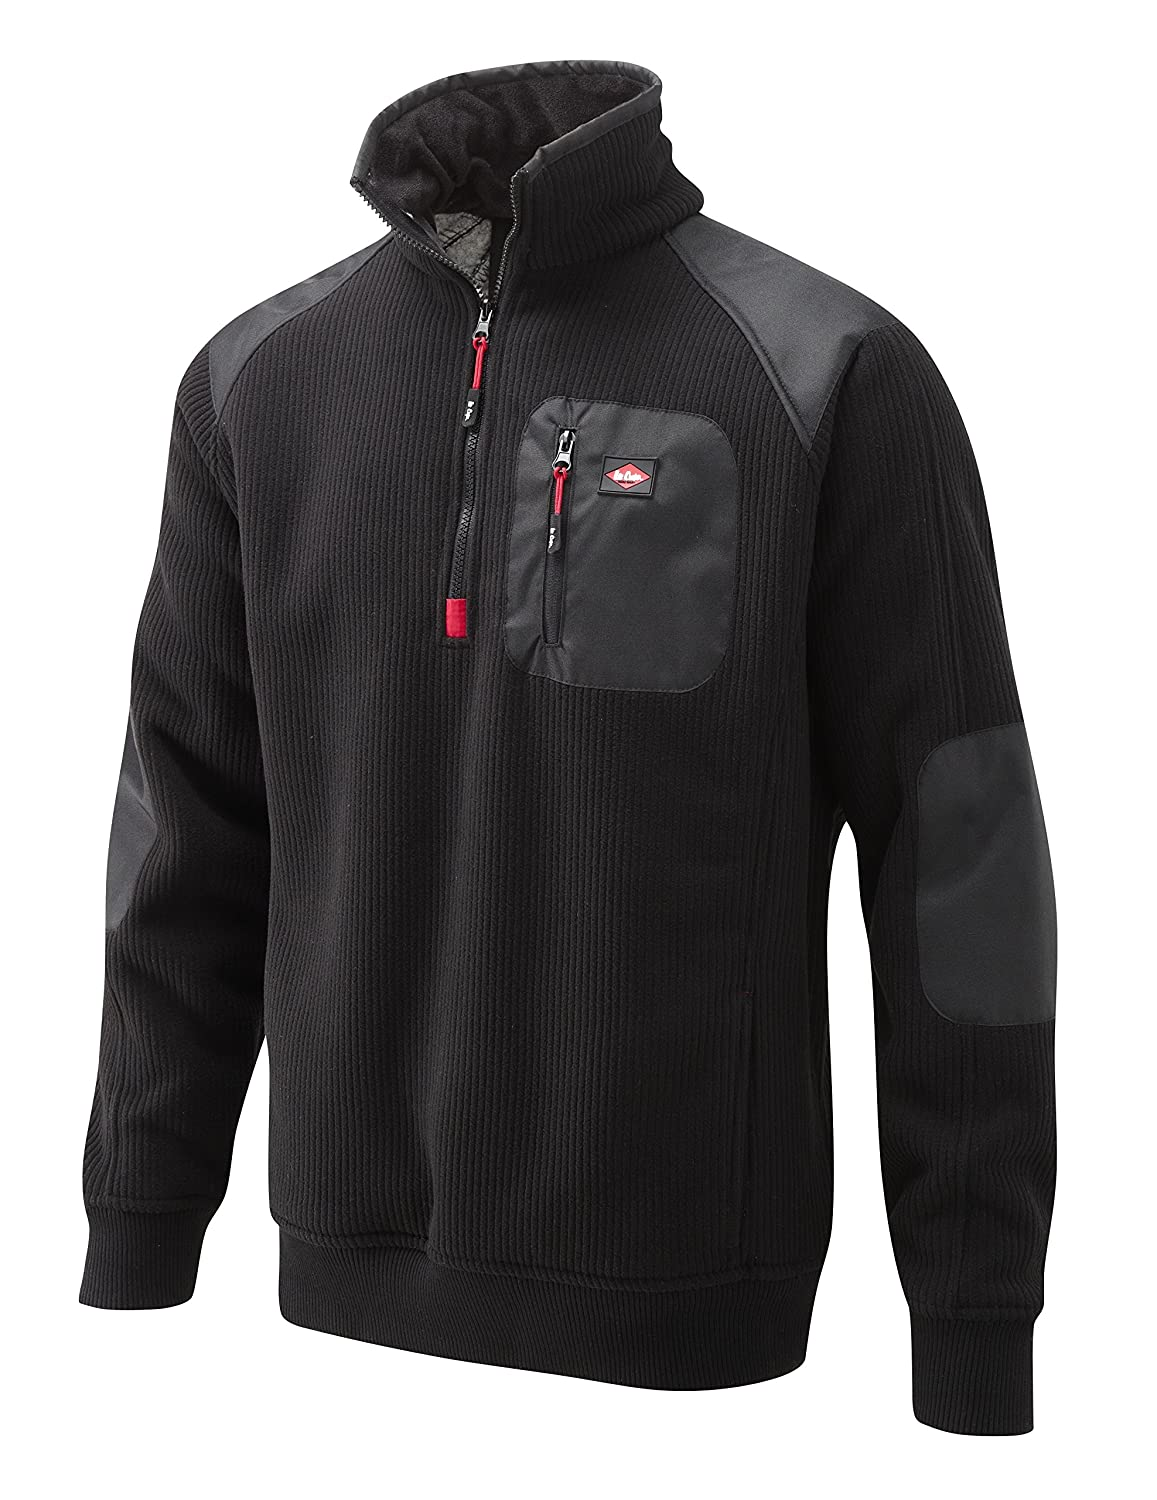 Lee Cooper New Mens Bonded Sherpa Lined Warm Stylish Fleece Half Zip Jacket with Zipped Chest Pockets Functional Durable Top Anti-Pill Work Leisure Workwear LCJKT422 Black S,M,L,XL,2XL,3XL